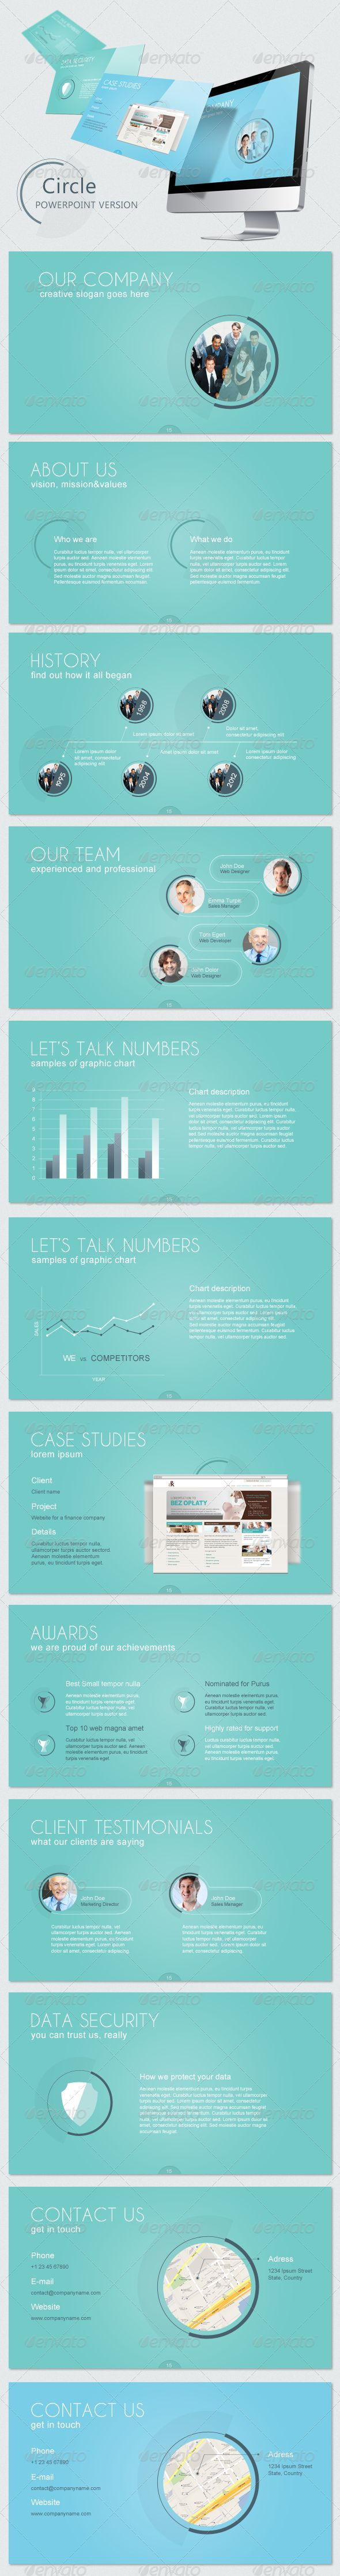 Famous 1 Year Experience Resume Format For Software Developer Small 10 Best Resume Samples Rectangular 10 Off Coupon Template 10 Tips For Making A Resume Youthful 100 Best Resume Words Soft12 Month Timeline Template 25  Best Ideas About Powerpoint Demo On Pinterest | Présentation ..